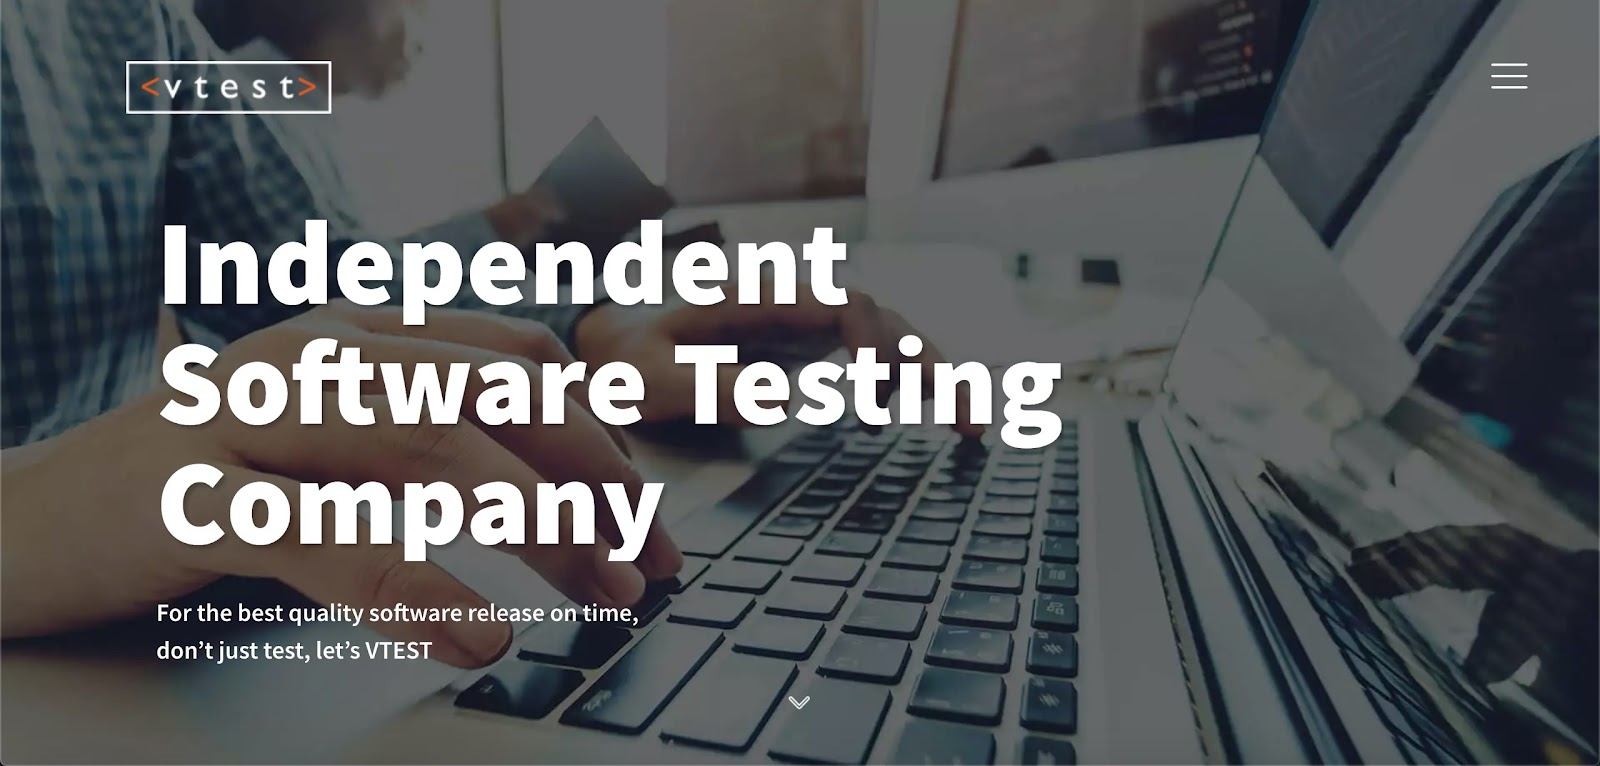 VTEST is one of the Software Testing Companies